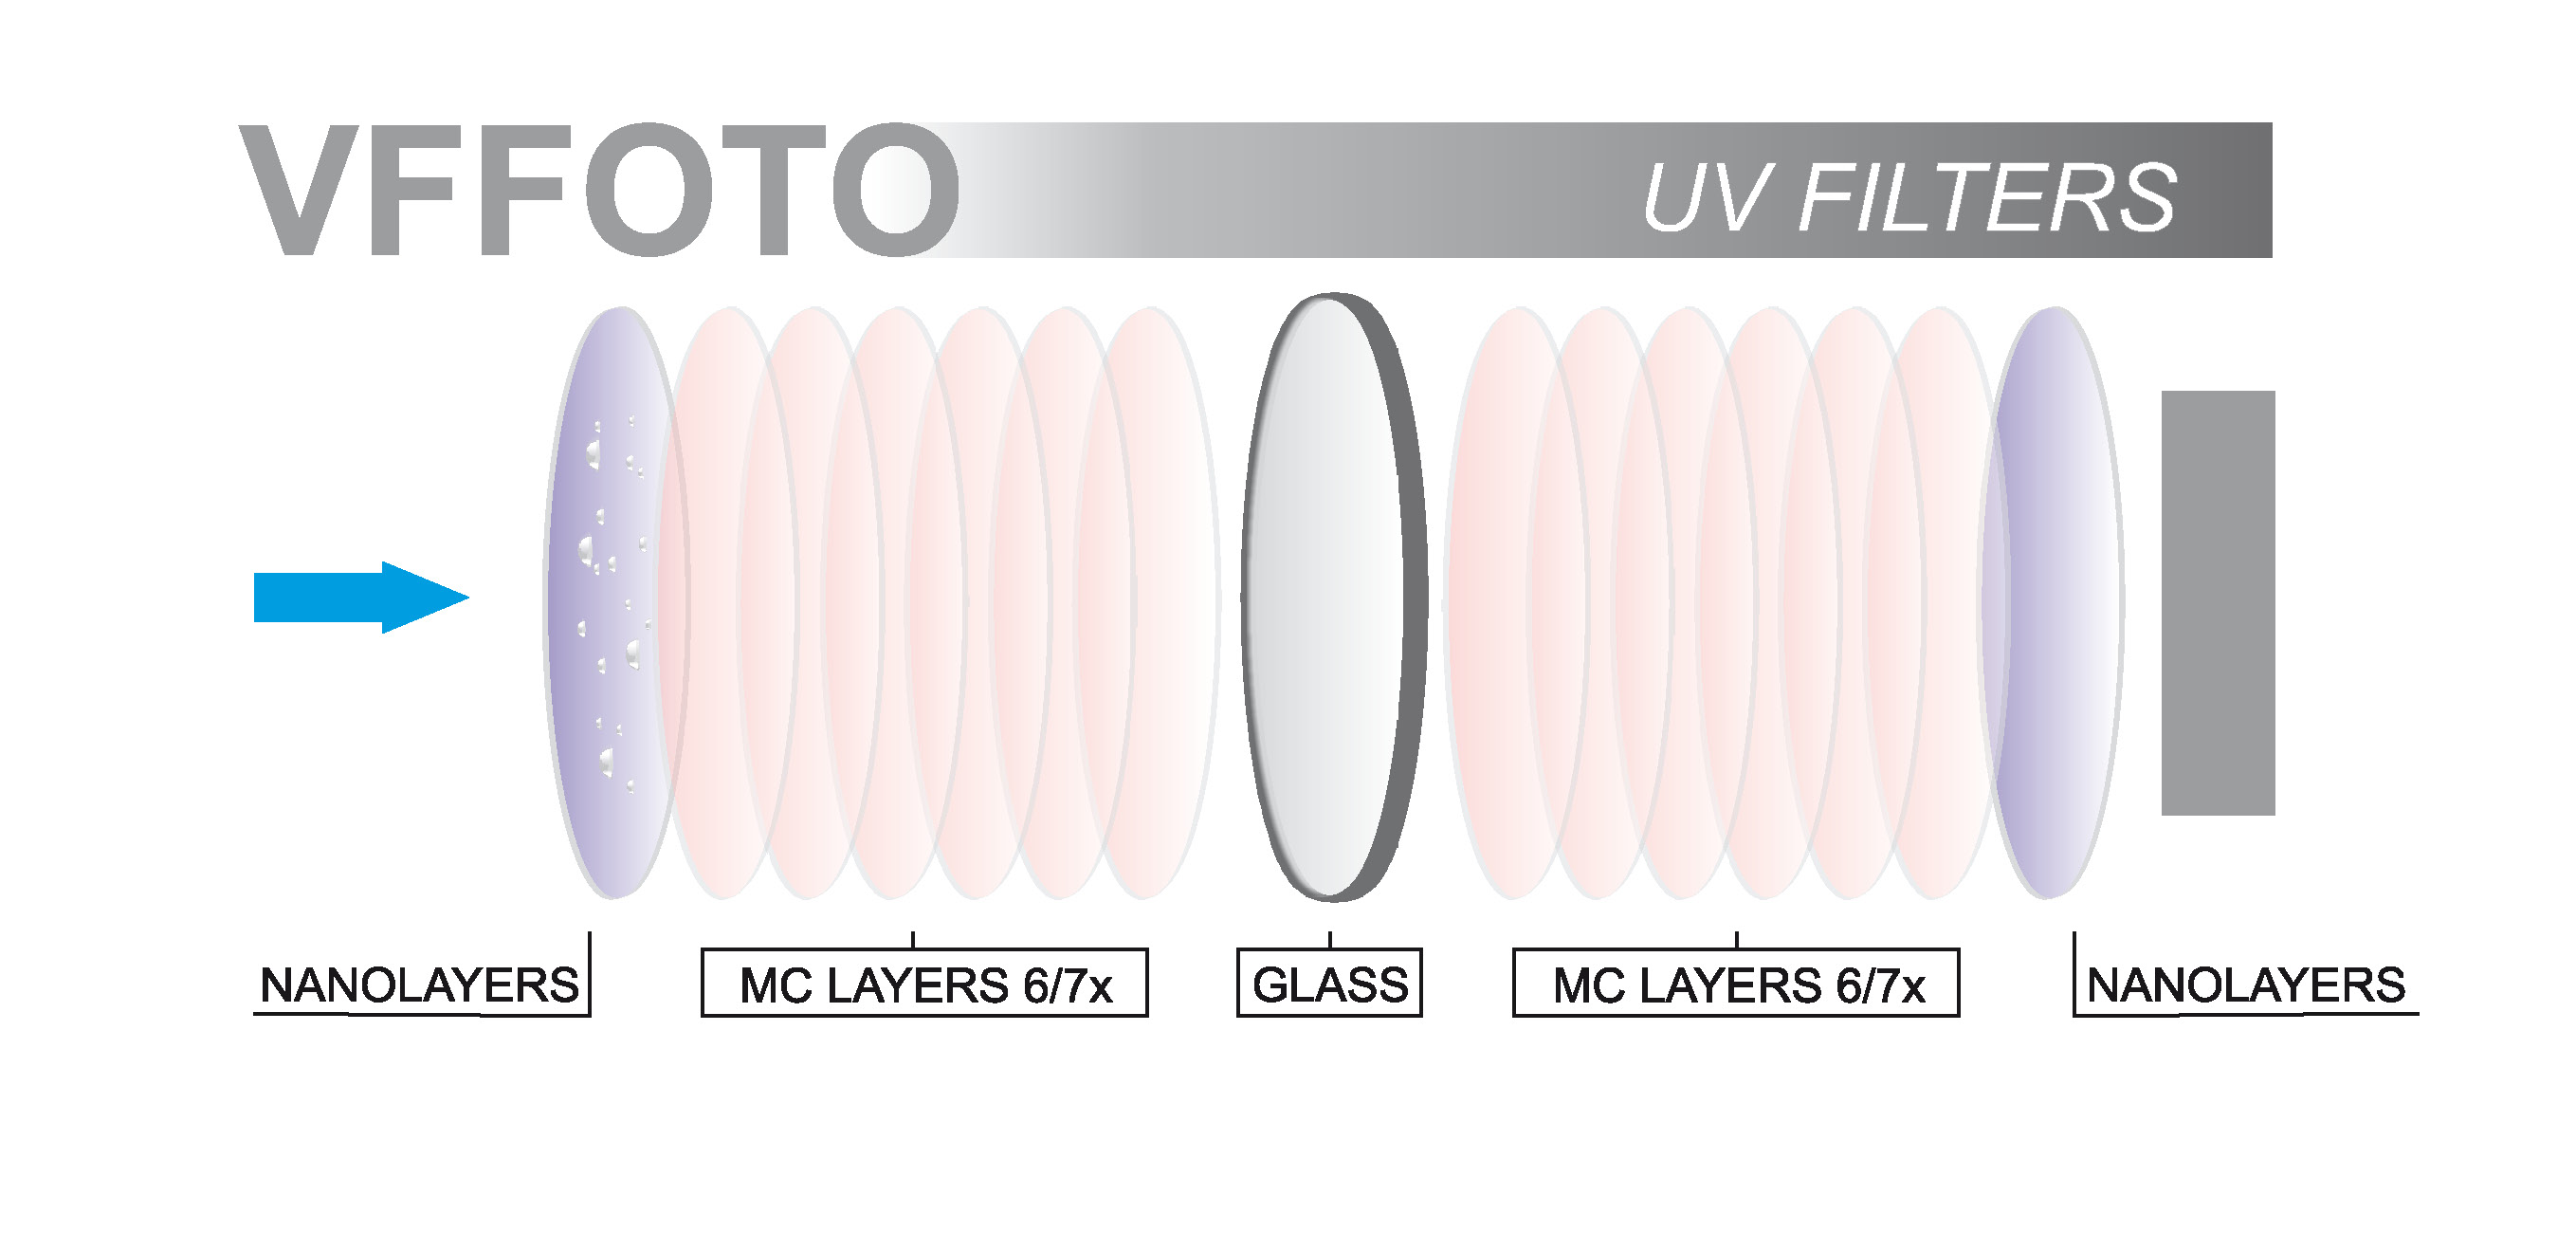 schematic cross-sectional view of the layers of the UV filter VFFOTO GS 62 mm